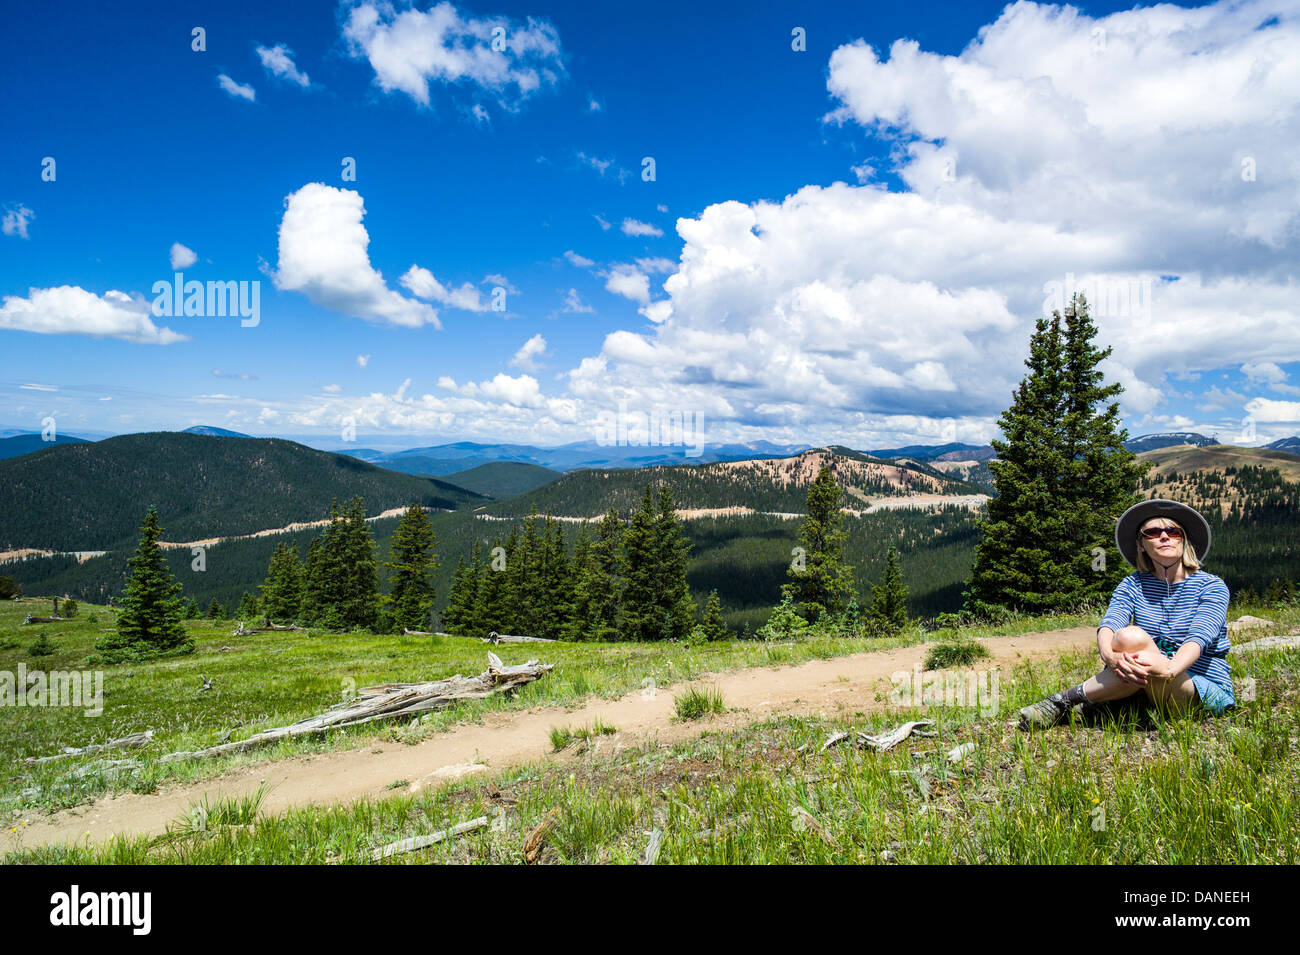 Lone woman pausing to enjoy the view, Monarch Crest Trail, Central Colorado, USA - Stock Image